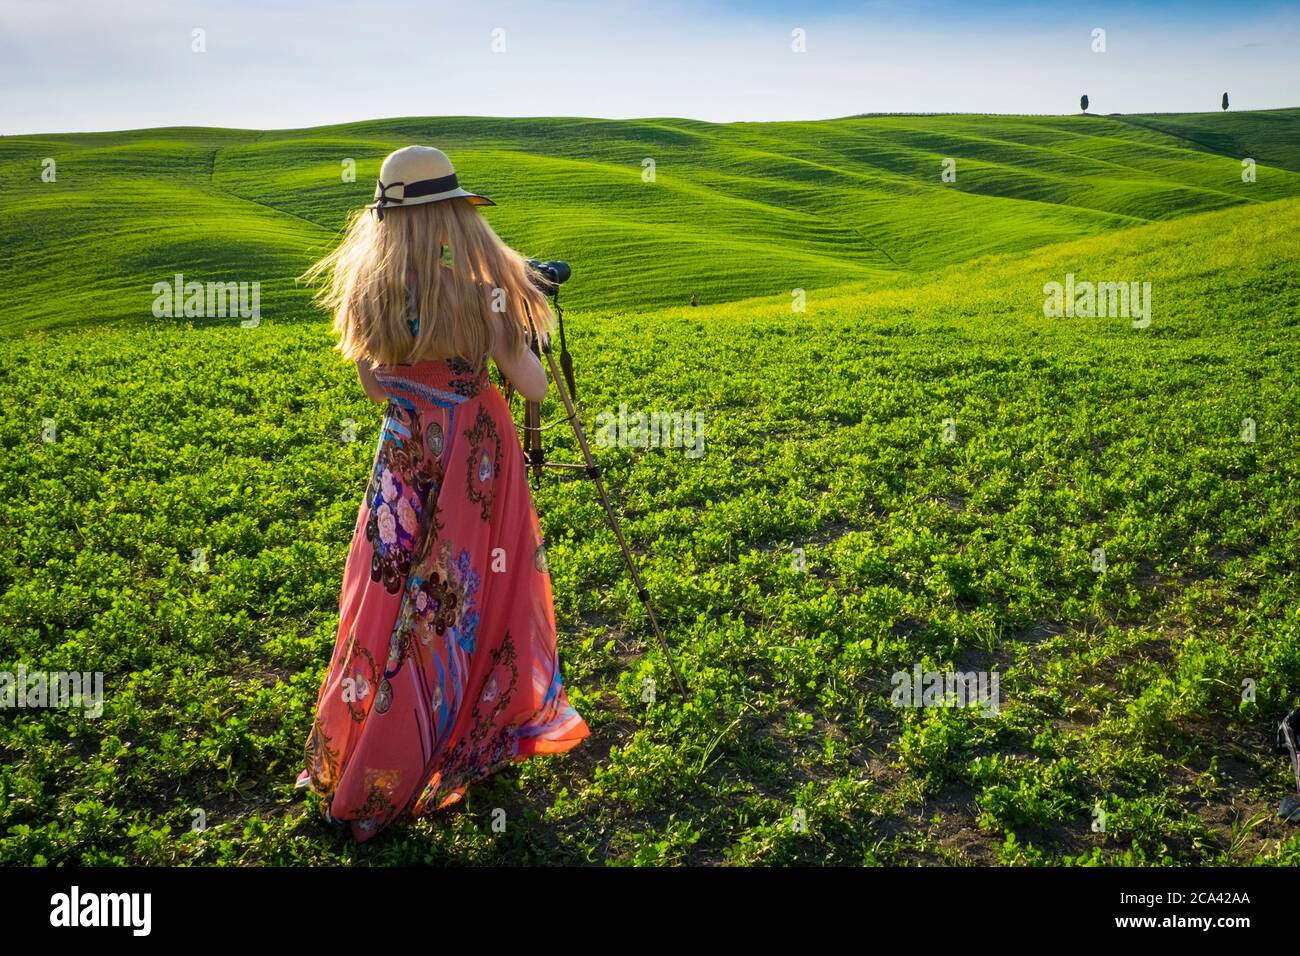 Orcia Valley, Siena district, Tuscany, Italy, Europe. Blonde woman with hat takes pictures in green fields. Stock Photo